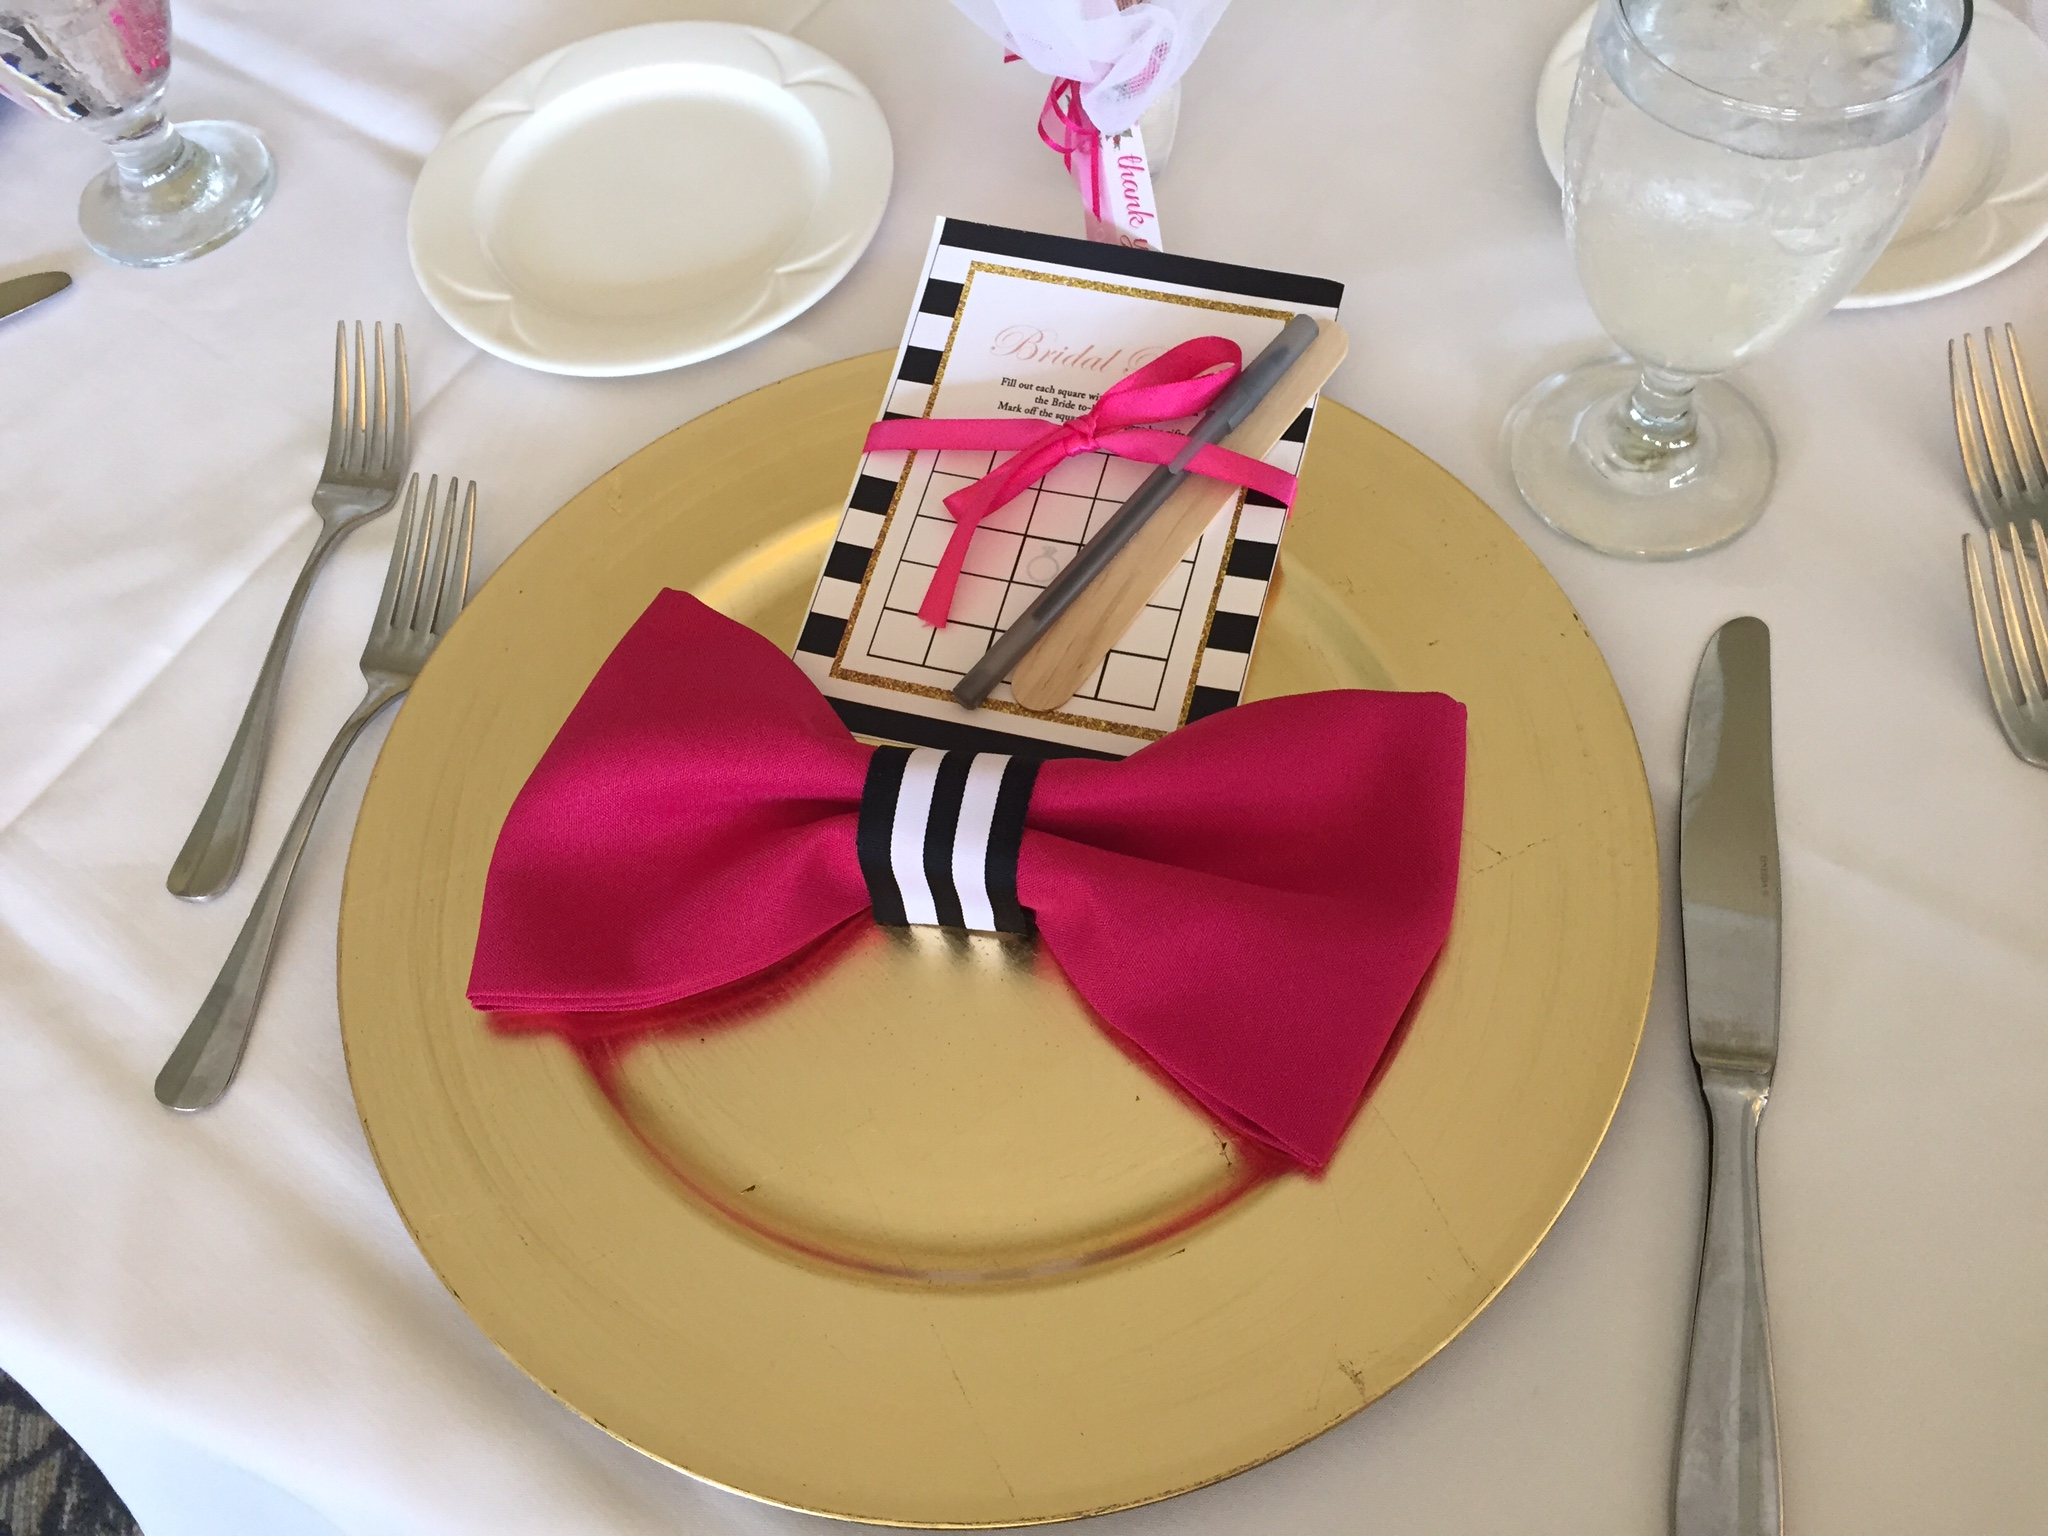 These Were The Table Settings How Cute Are The Napkins